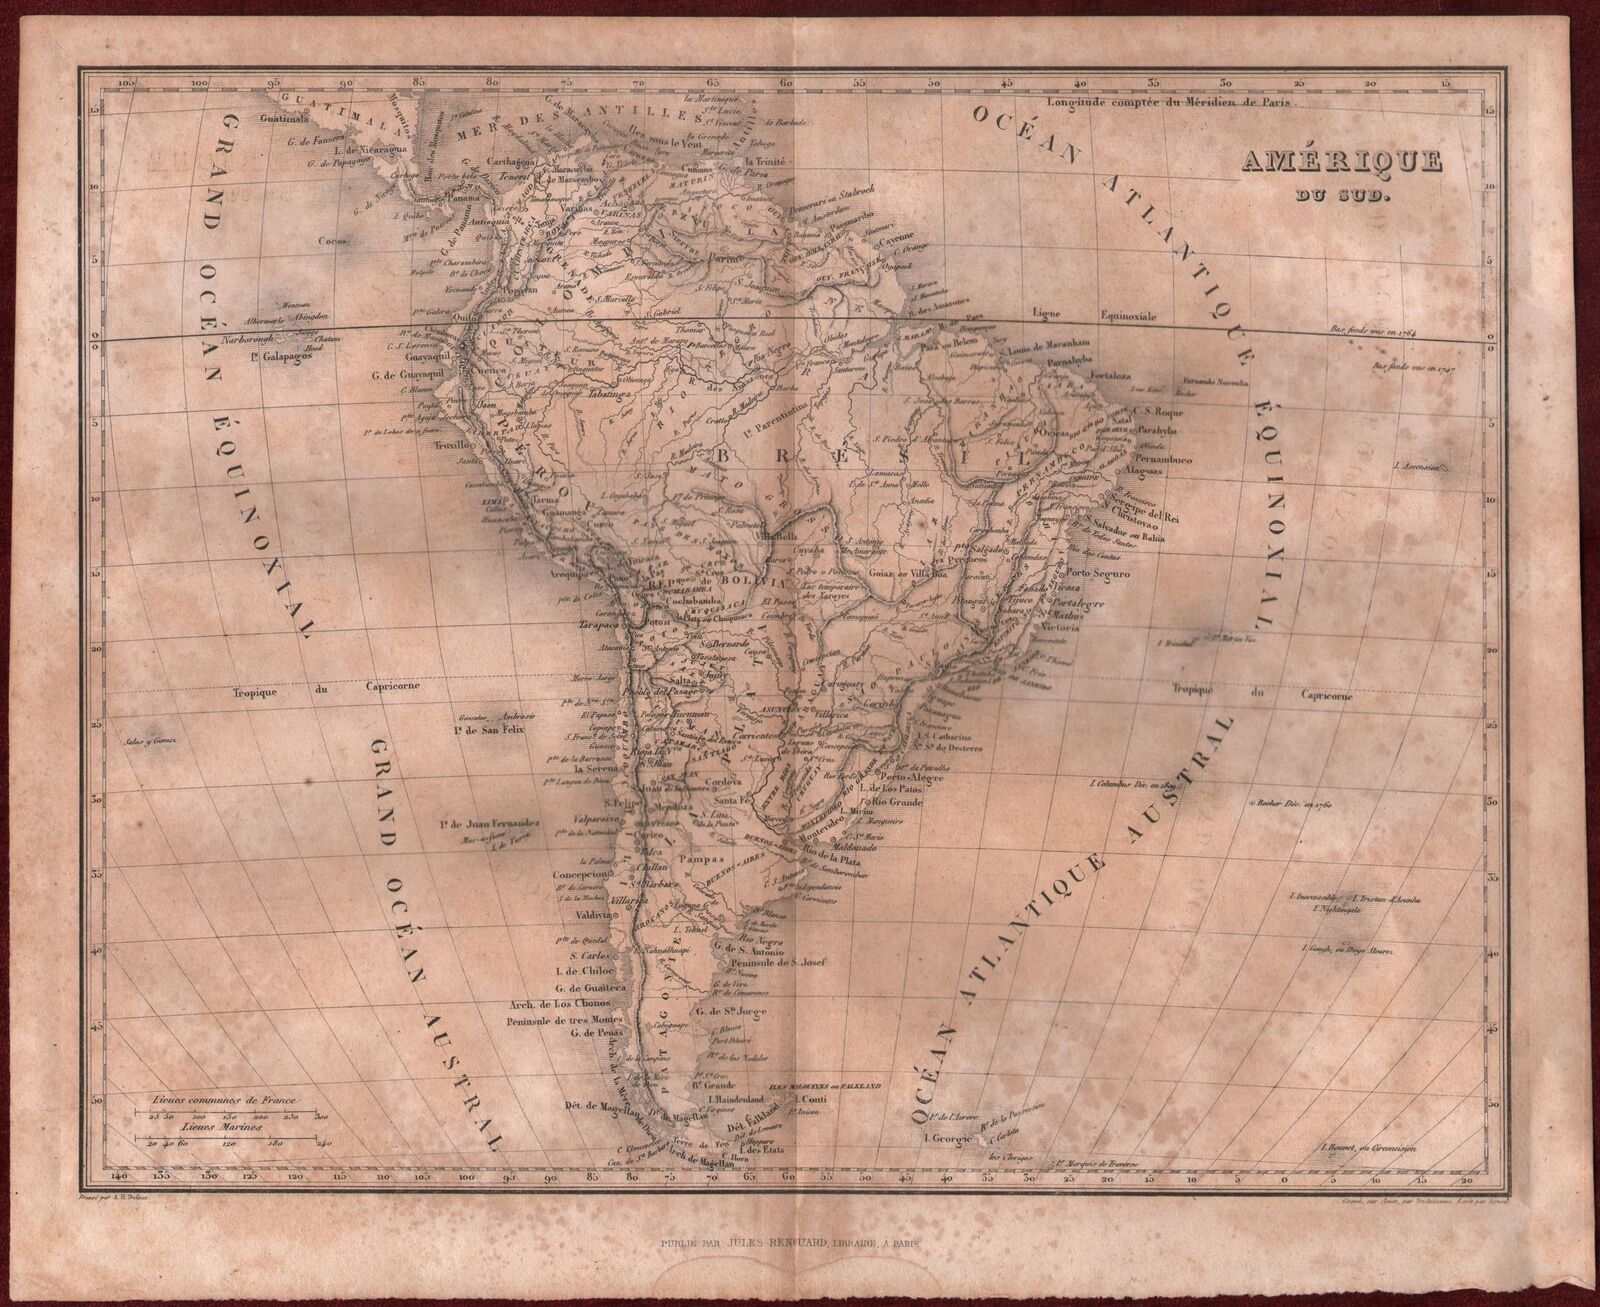 One of the maps printed by Jules Renouard